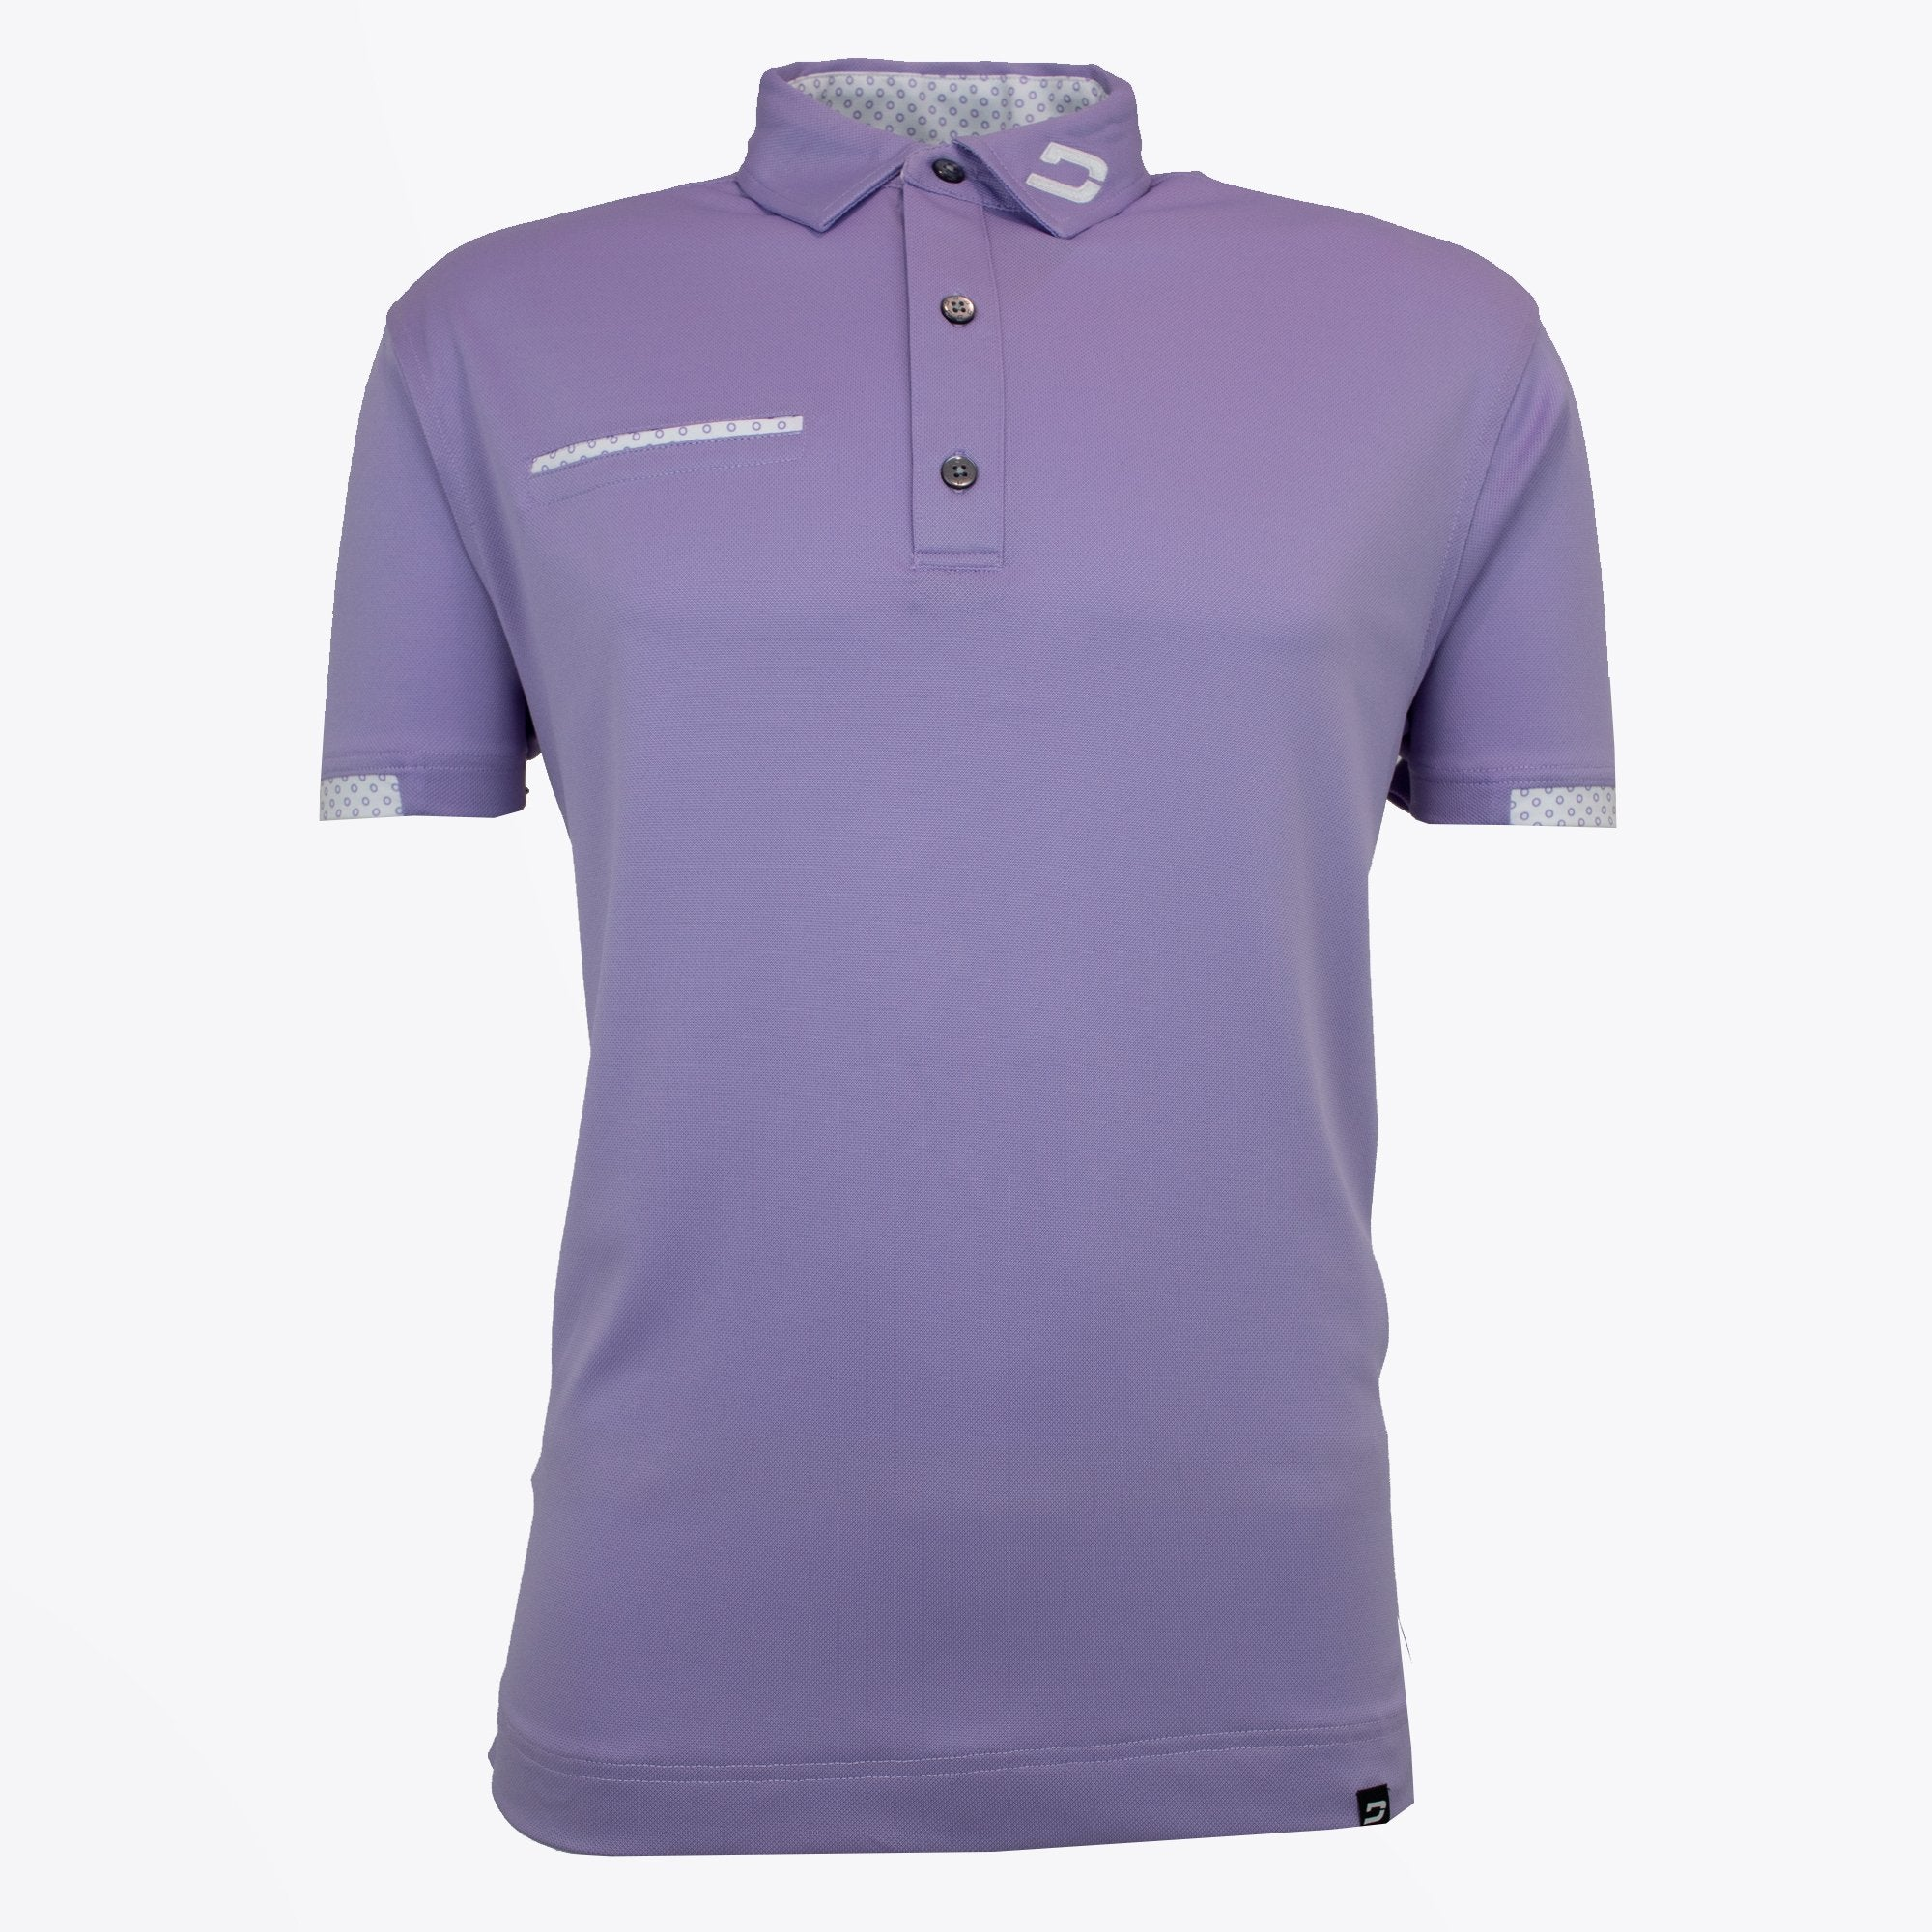 Druids Golf - Mens Fashion Pocket Polo (Lavendar)